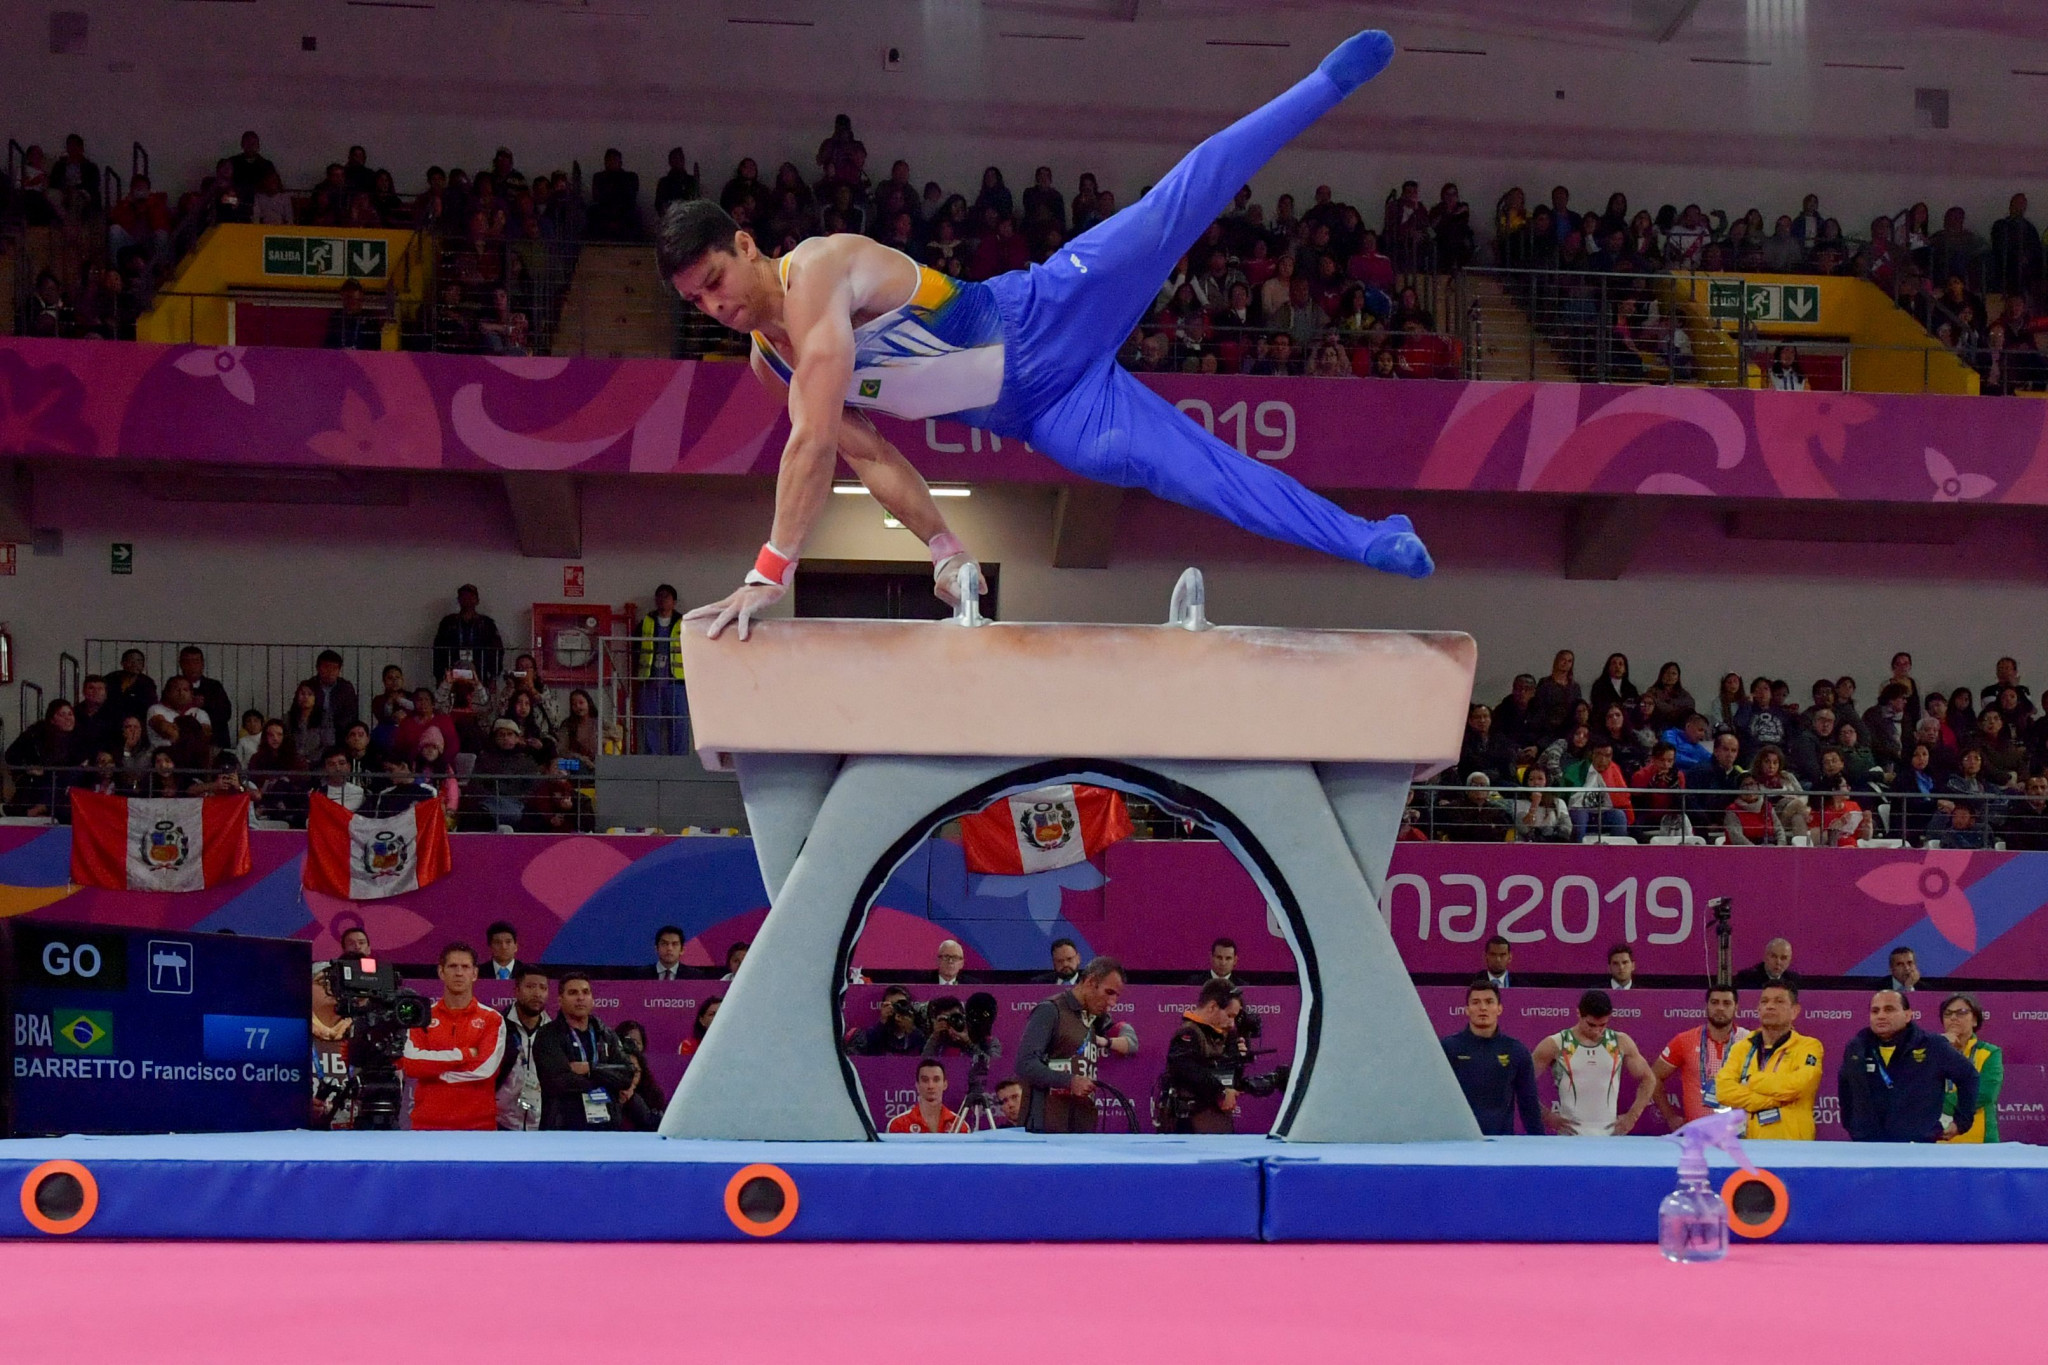 Barretto masters pommel horse in gymnastics apparatus finals at Lima 2019